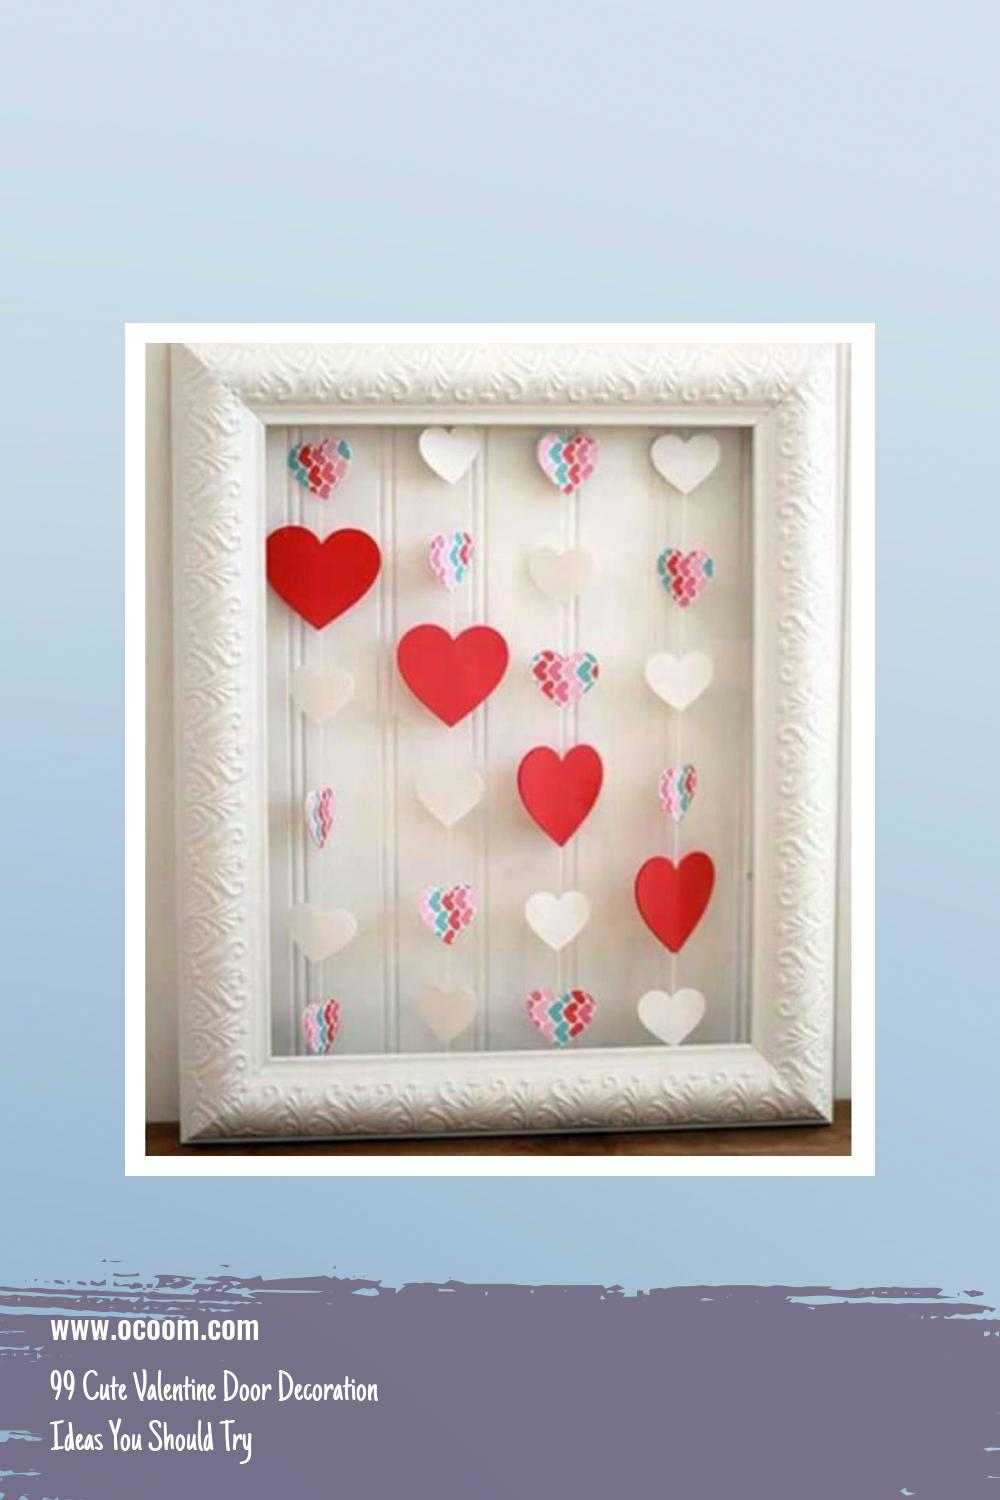 99 Cute Valentine Door Decoration Ideas You Should Try 18